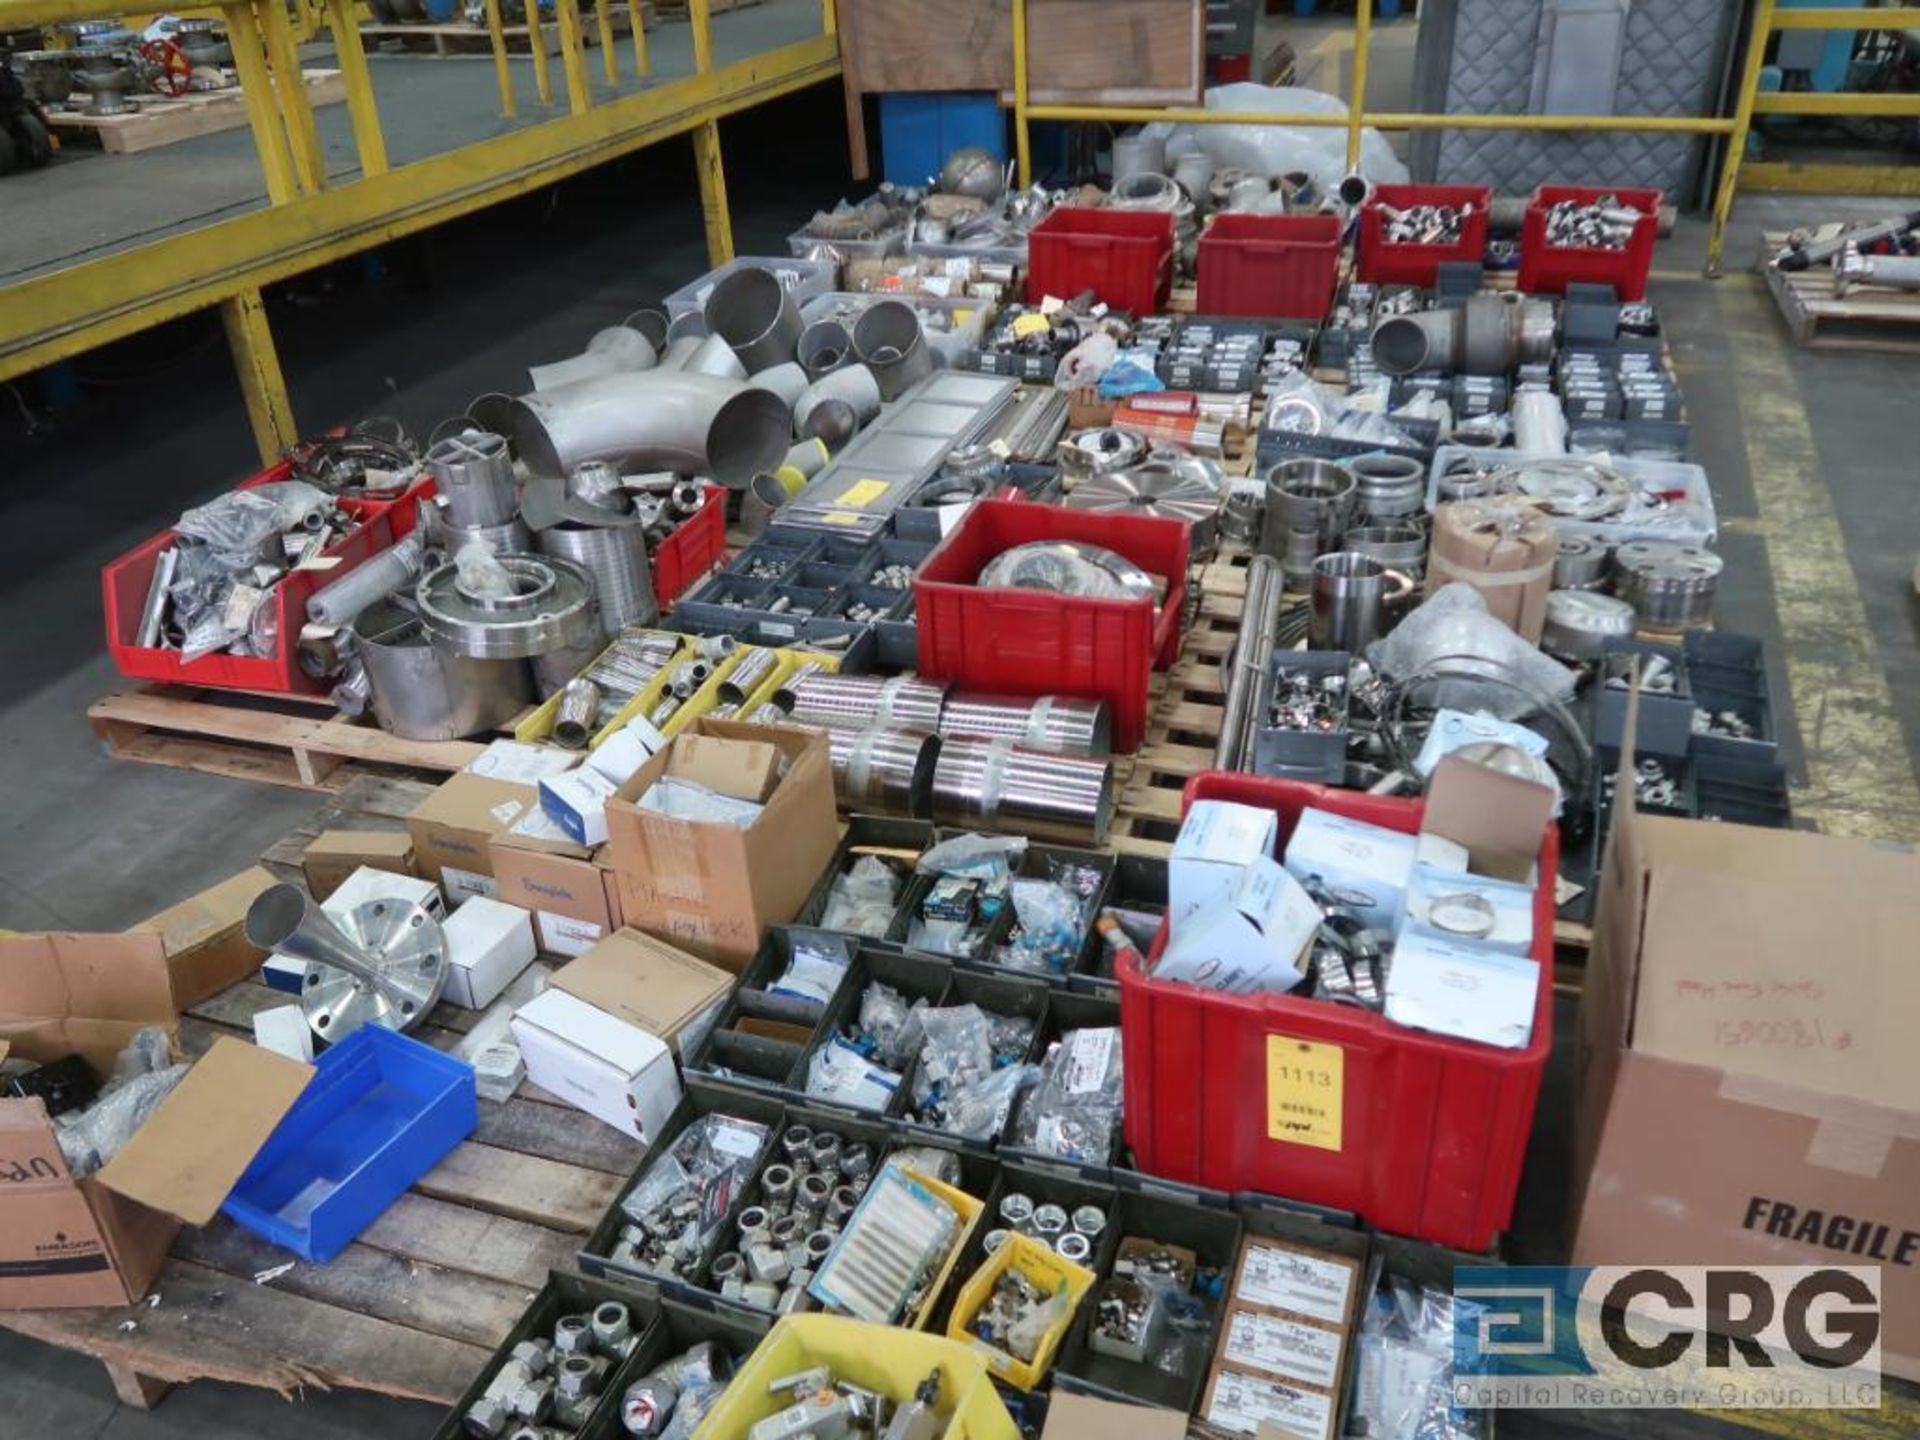 Lot of (14) pallets of stainless fittings, clamsps, couplers, and flanges (Finish Building)